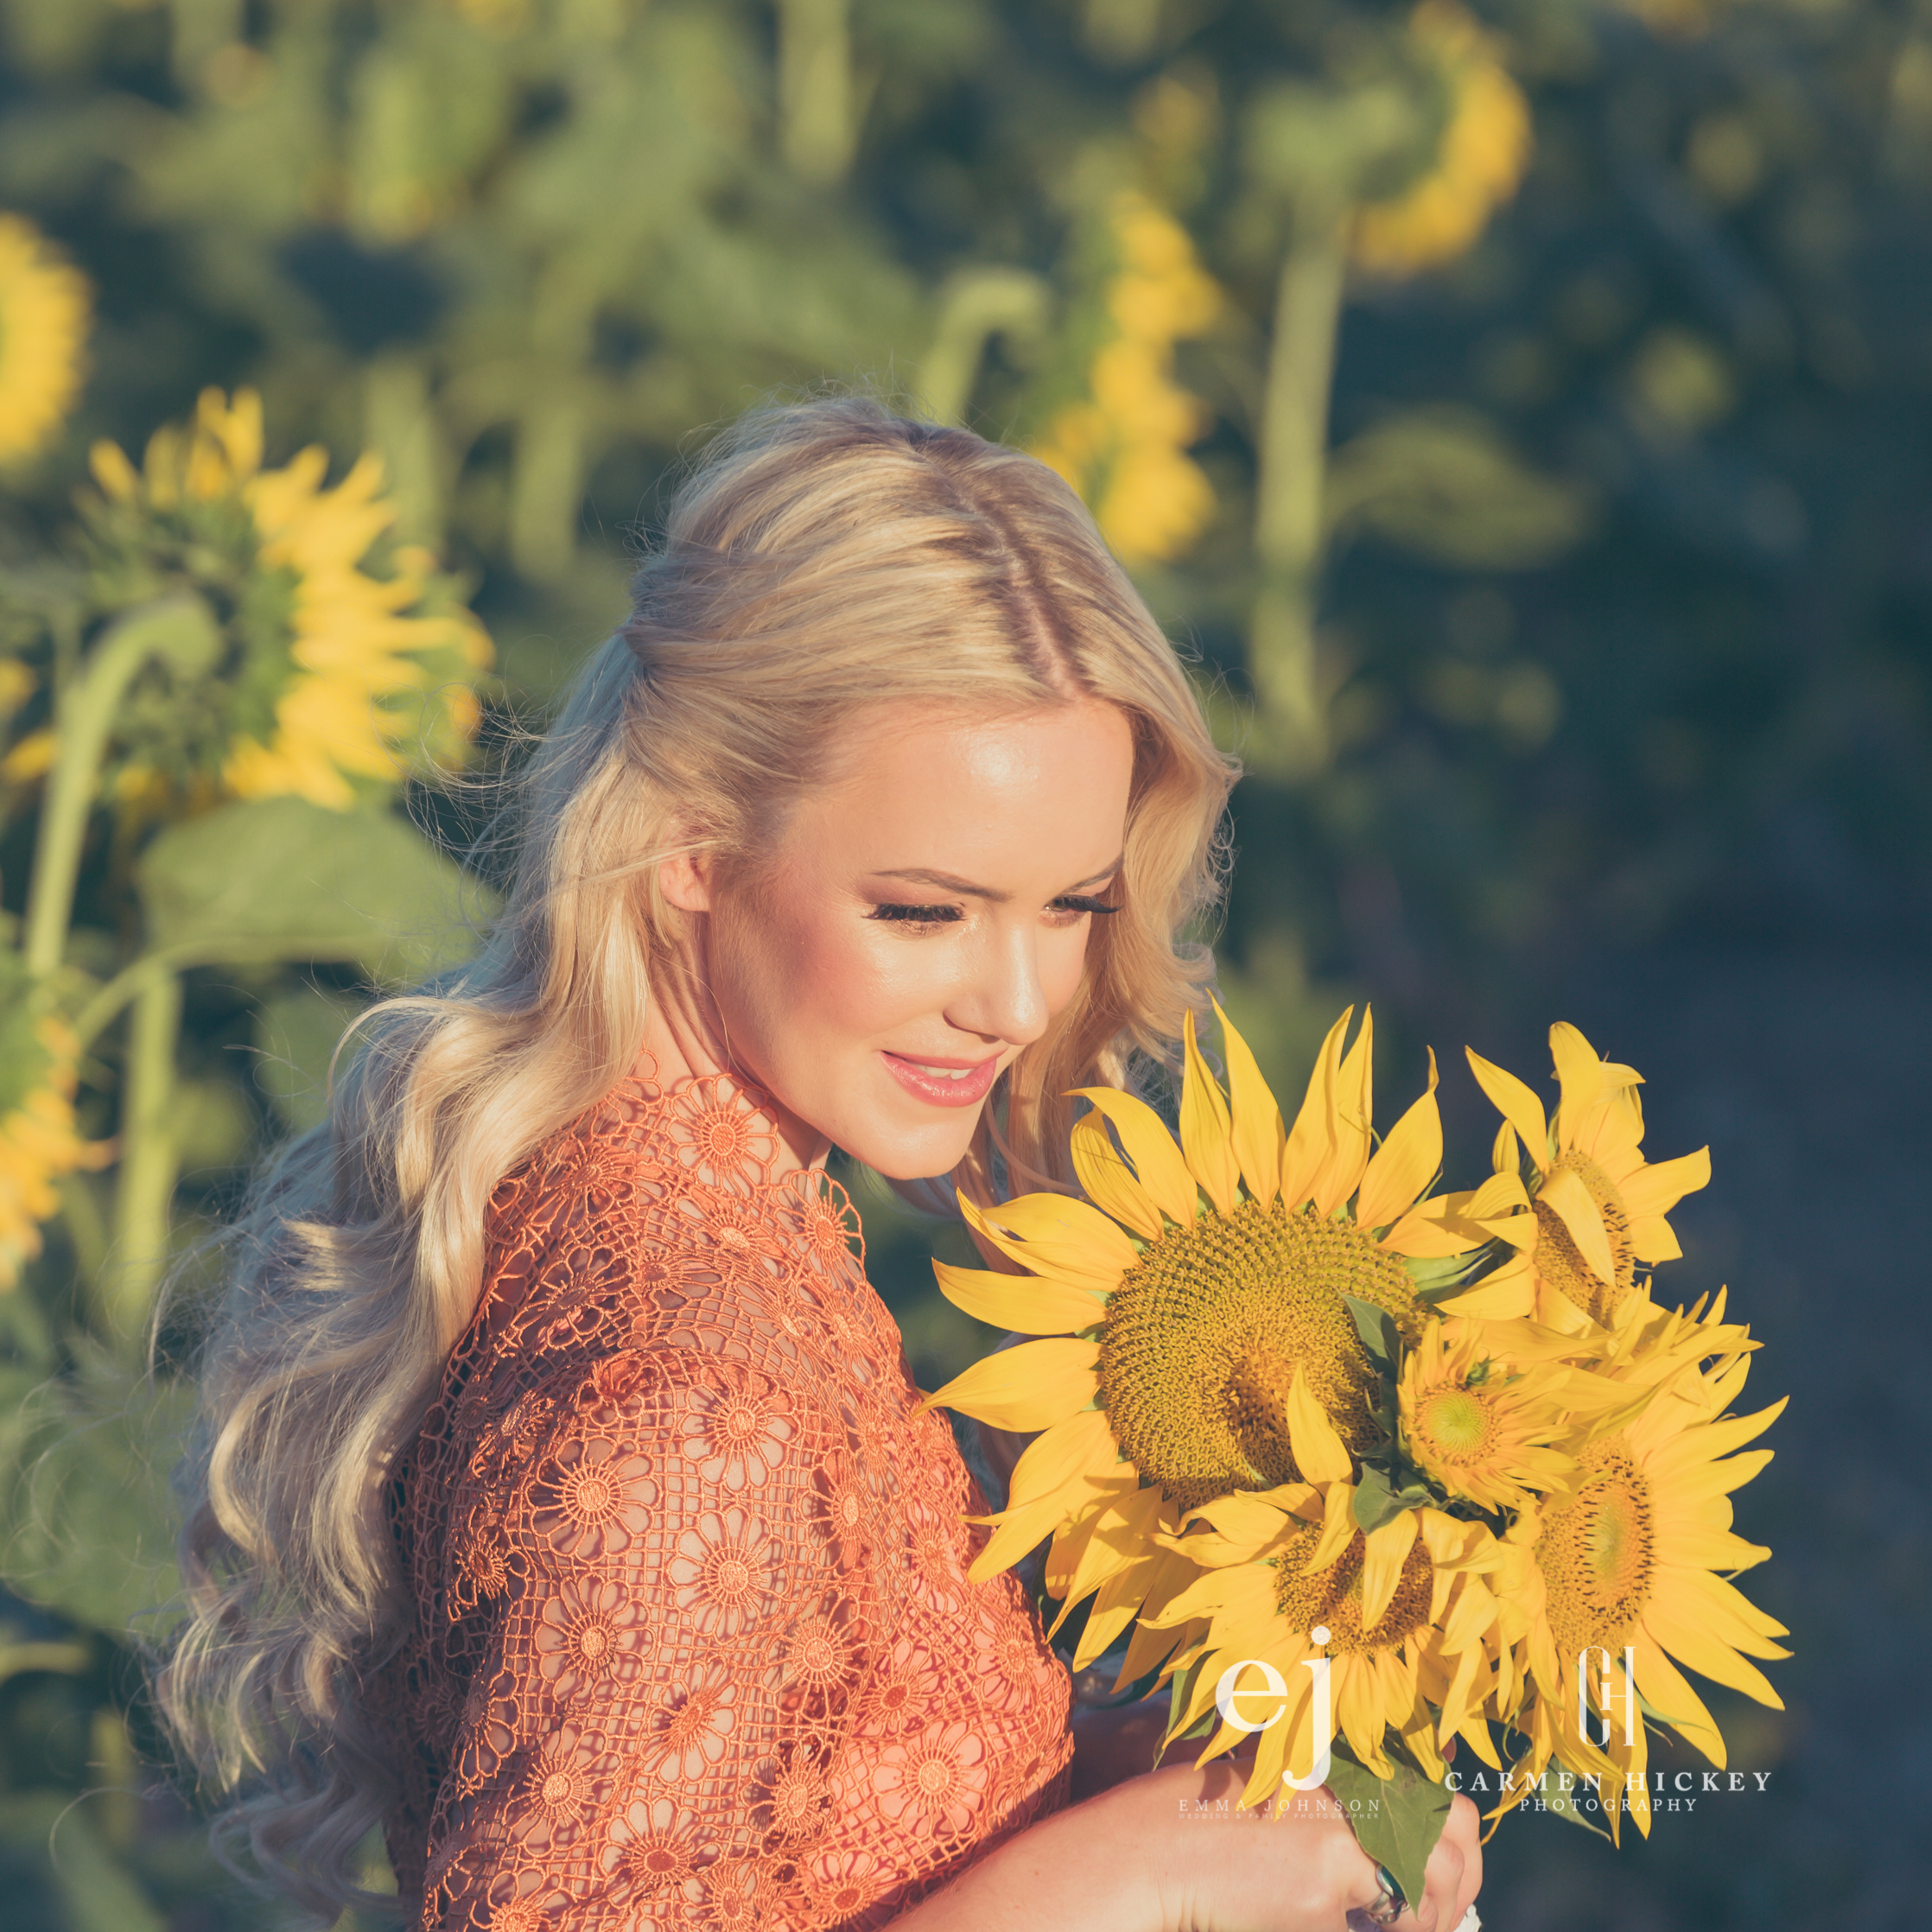 sunflowers031.jpg